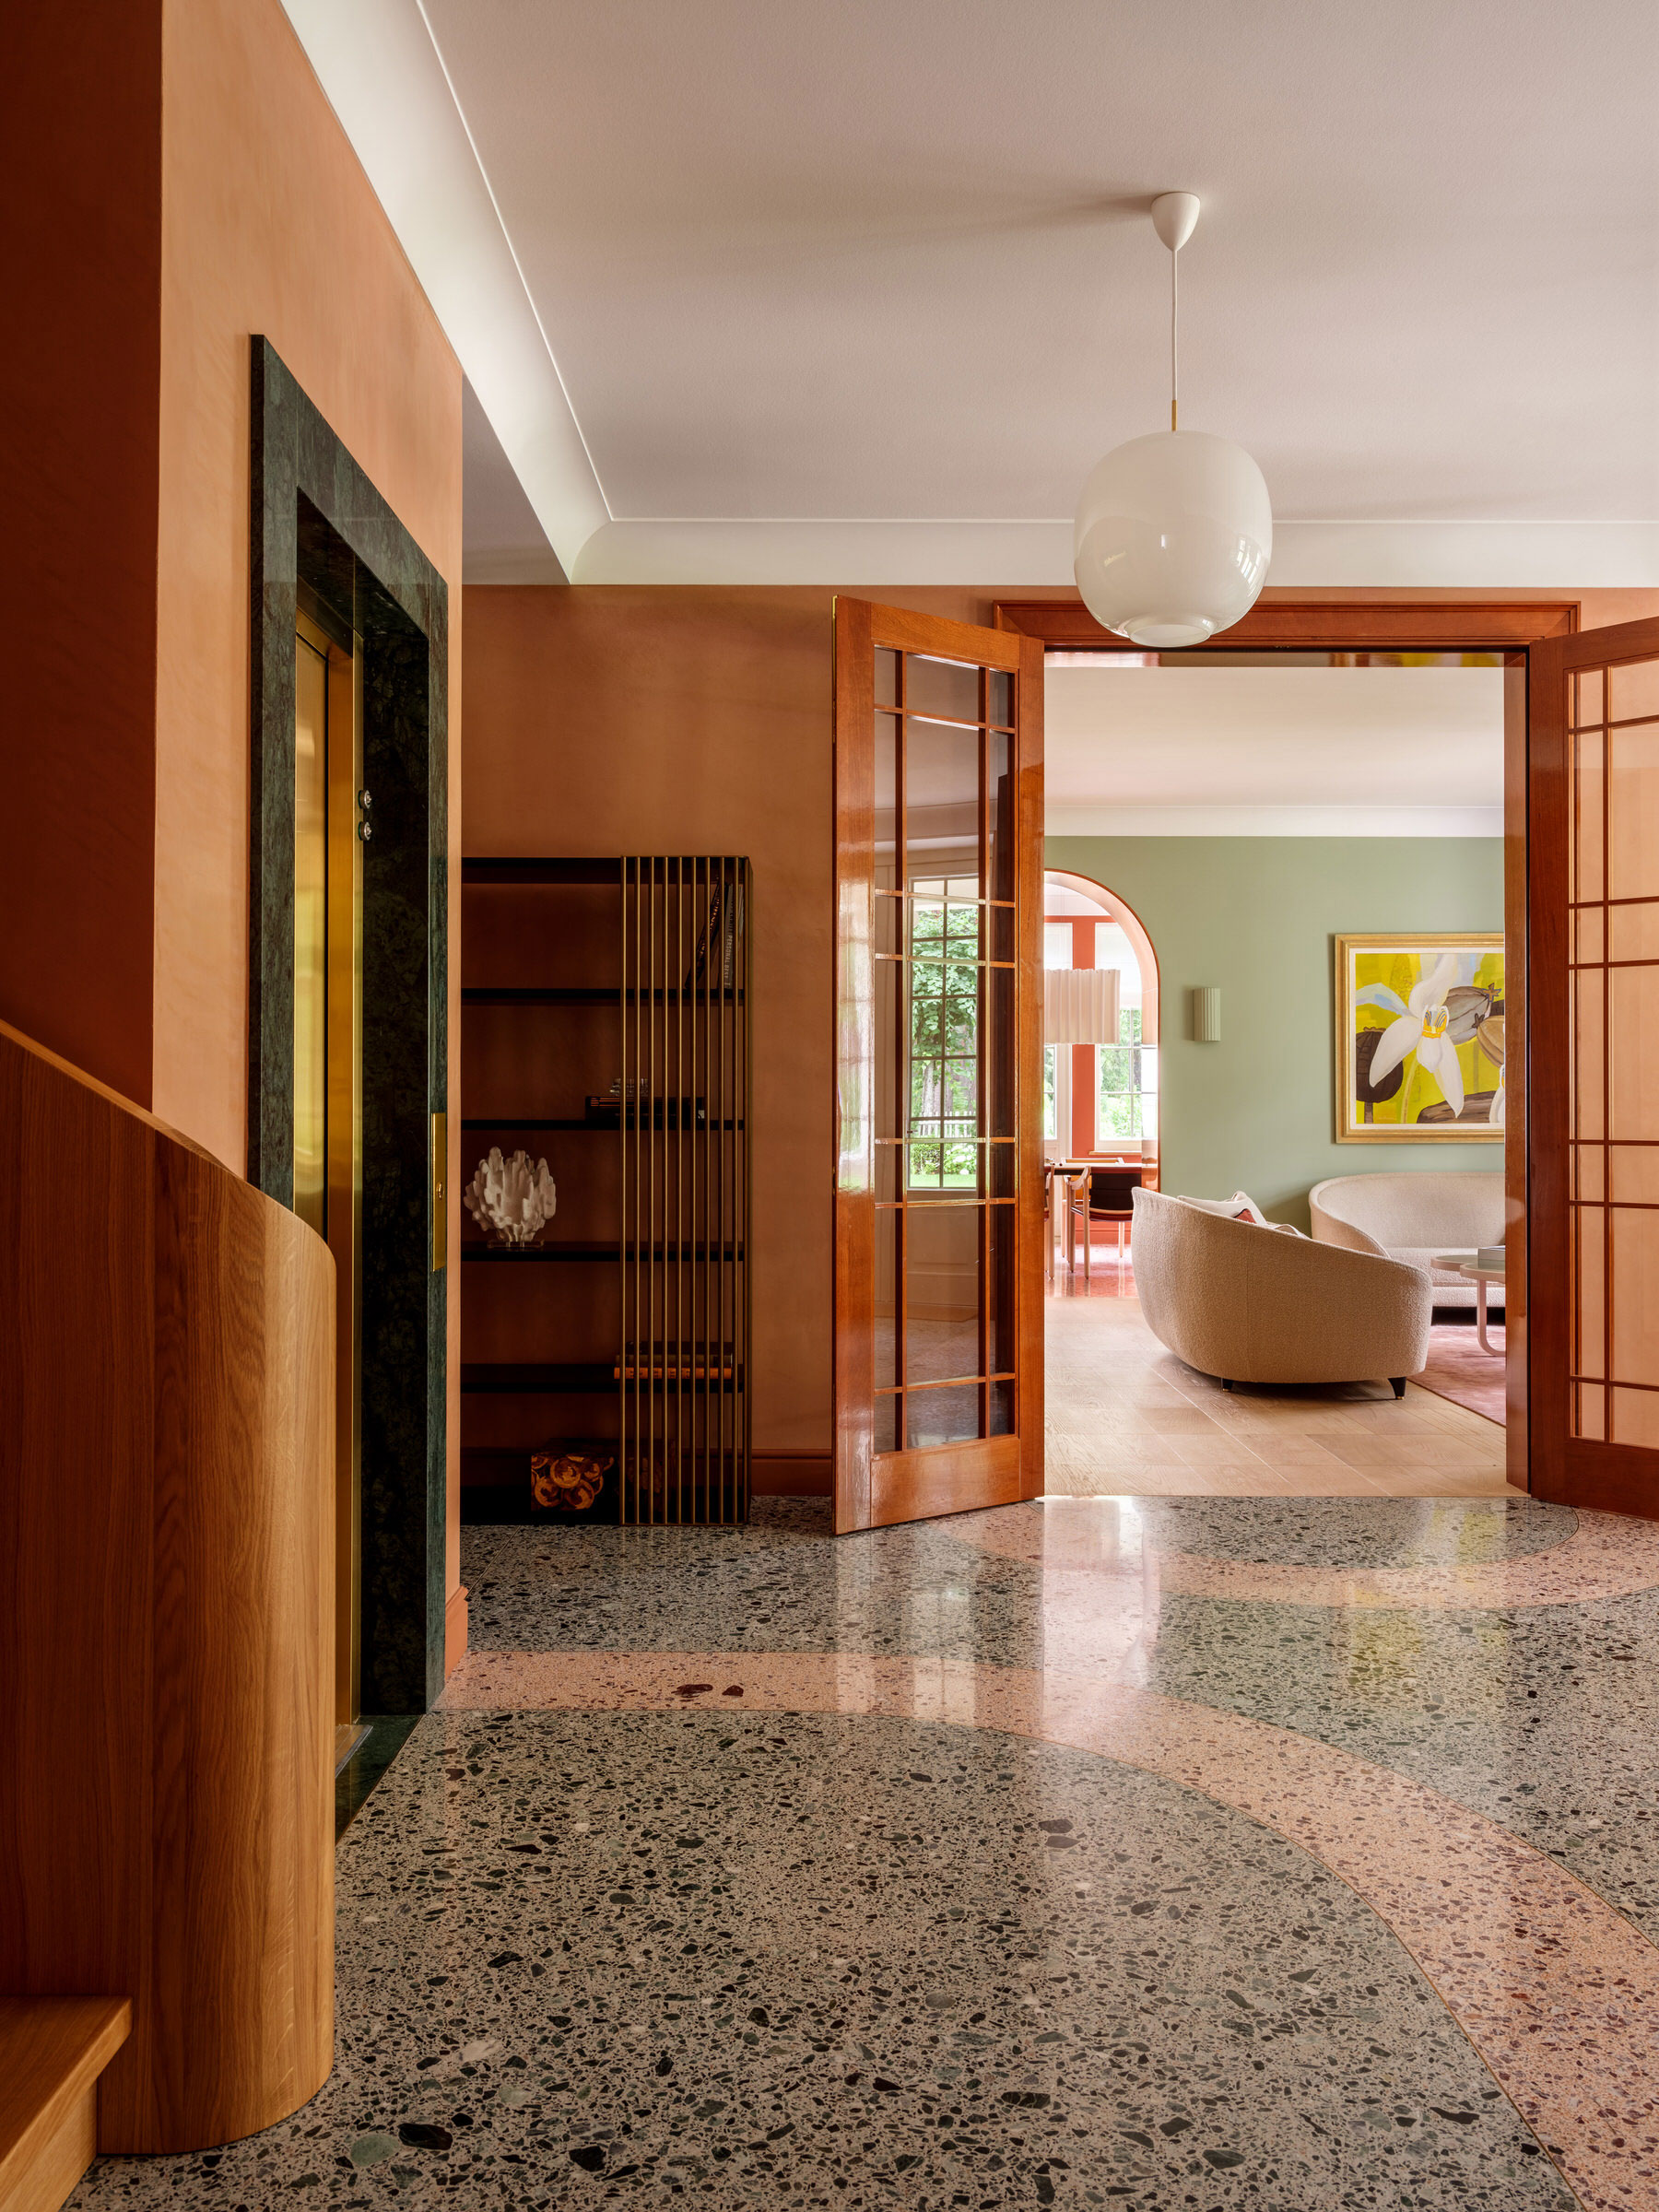 Agnes Rudzite Interiors, 1930s Villa In Jurmala, Latvia, Heritage Interior, Photo Mikhail Loskutoff | Yellowtrace